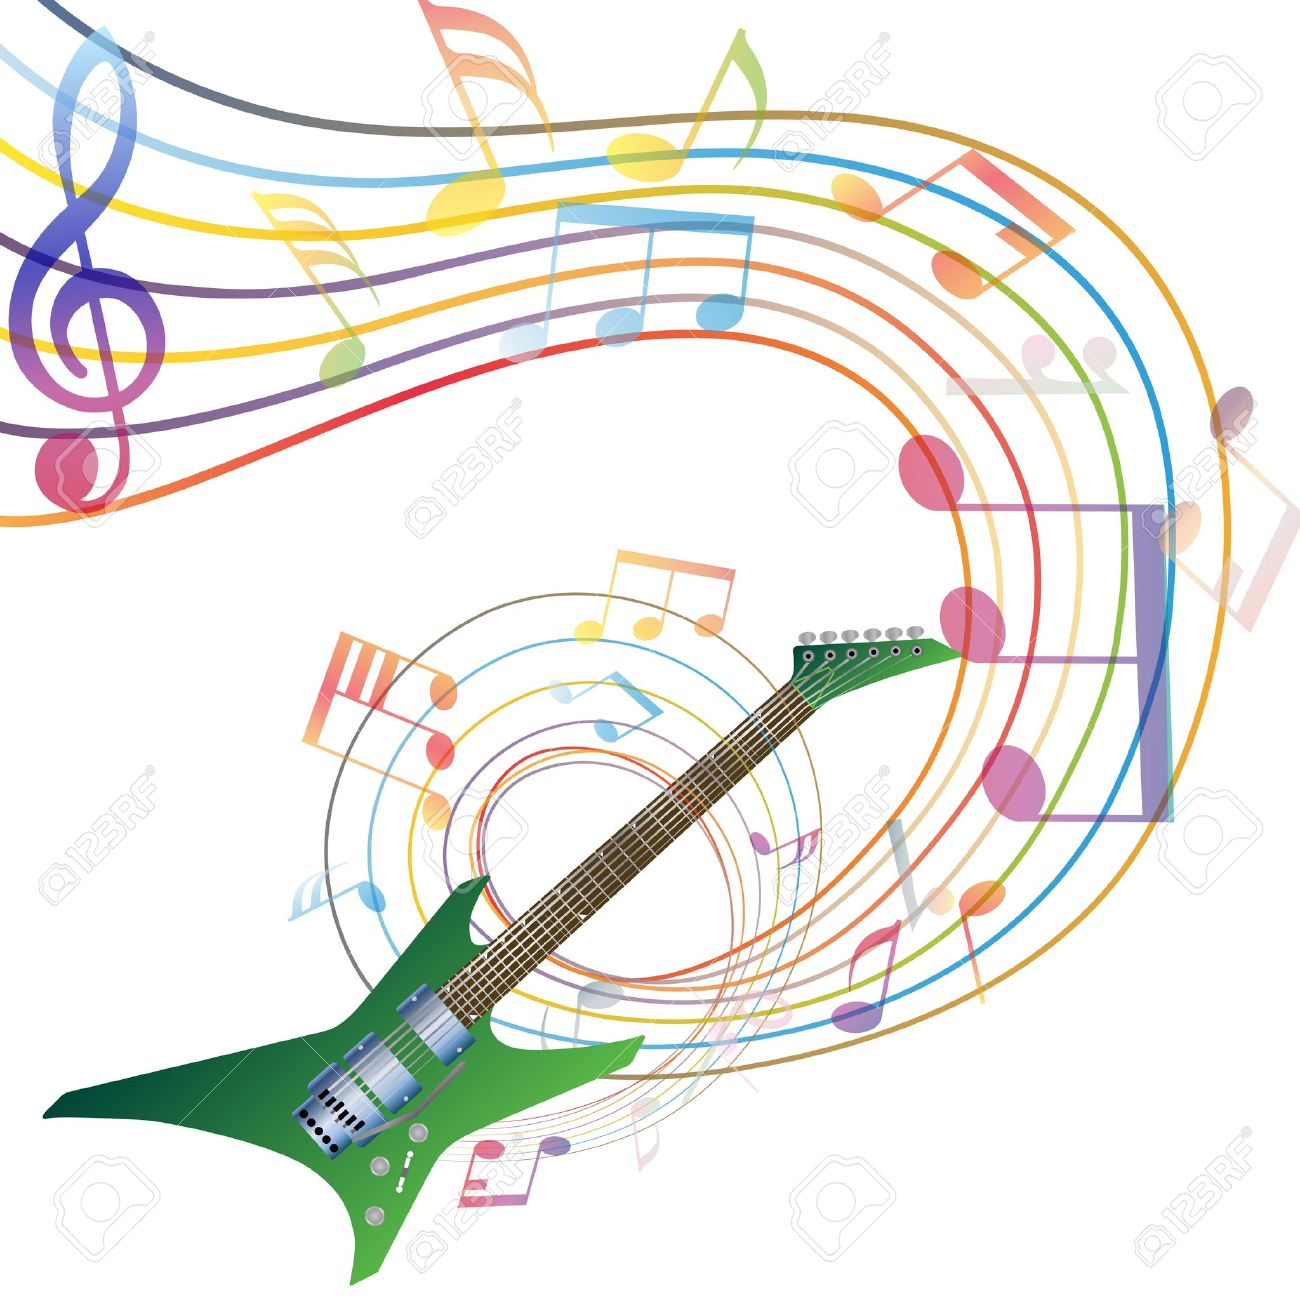 musical notes staff background with guitar illustration